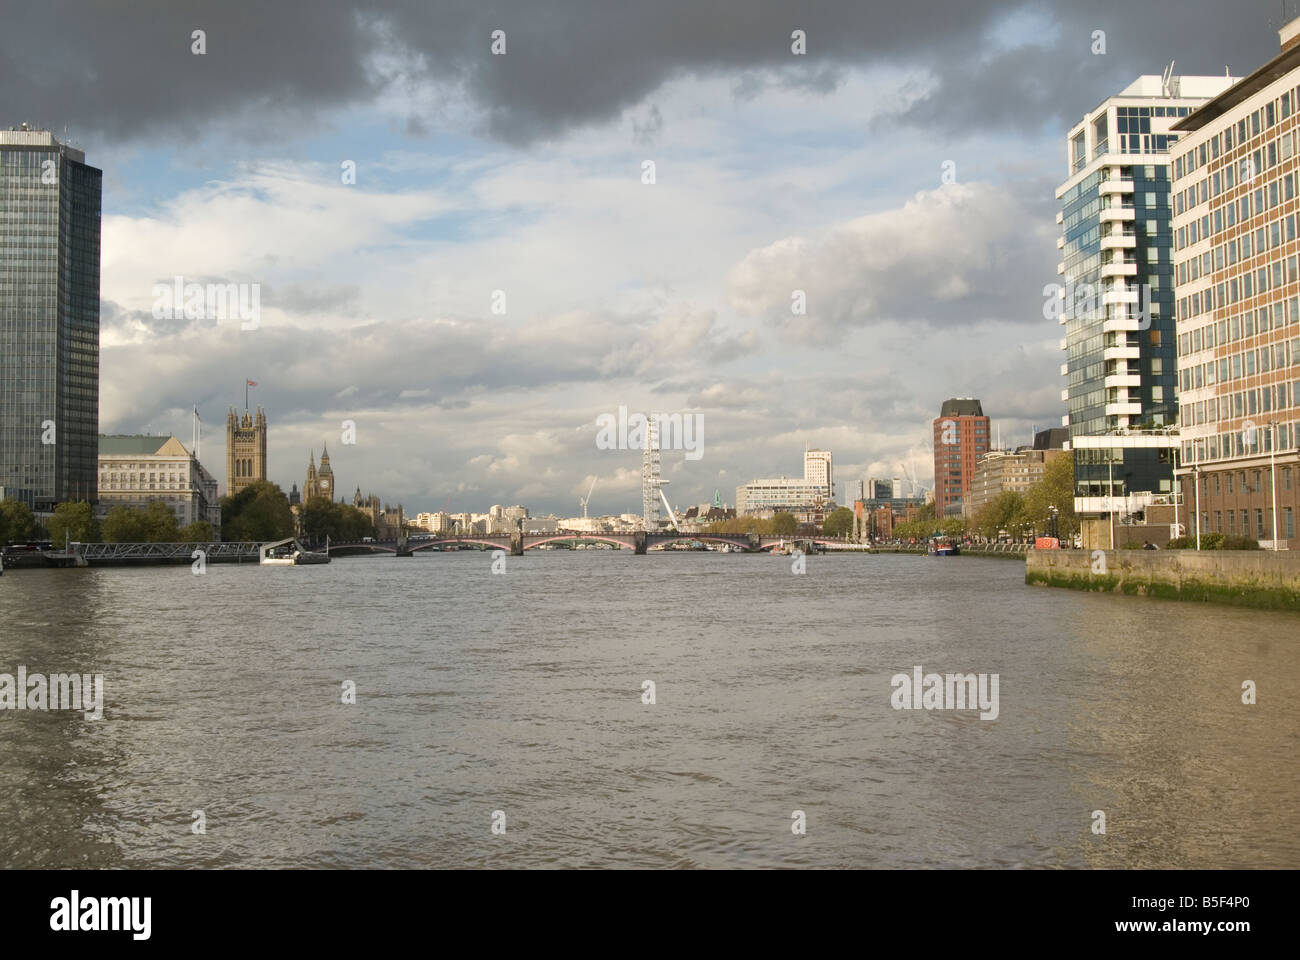 A shot looking down the Thames River towards the South Bank with buildings on both sides, and a rain cloud is forming - Stock Image